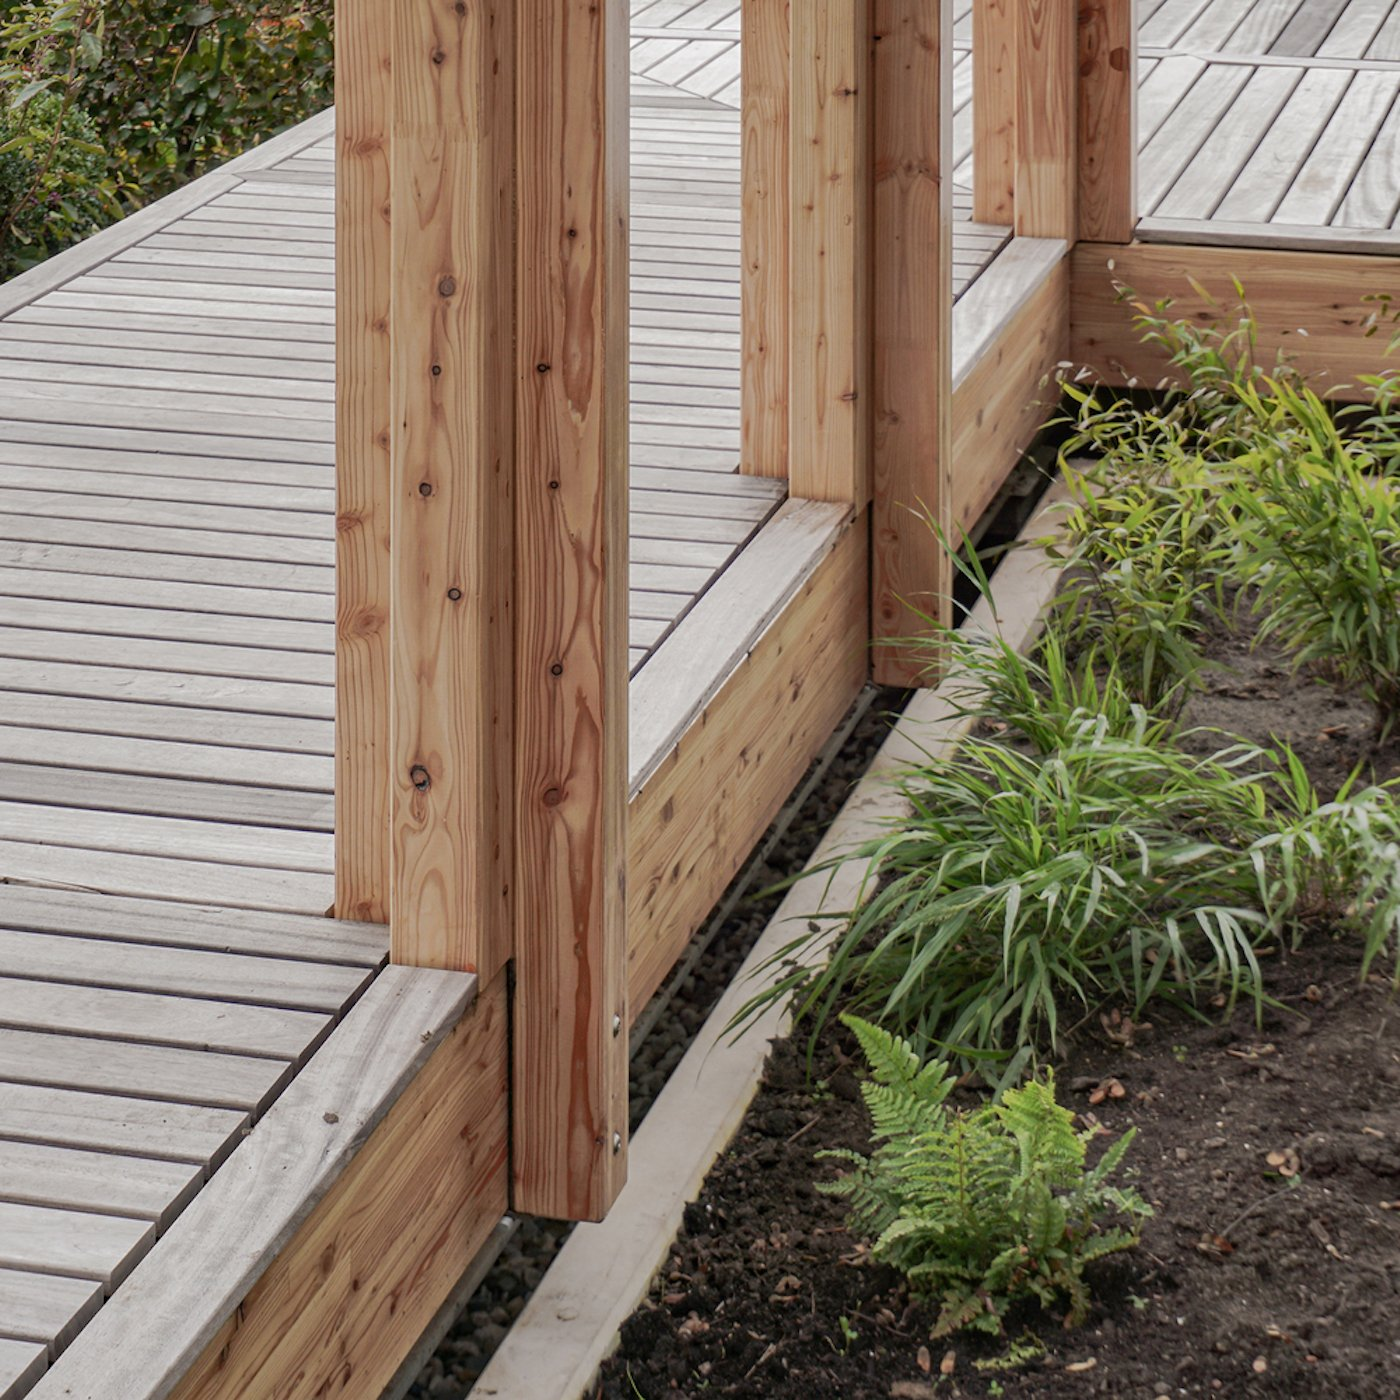 Detail view of timber deck and garden beds